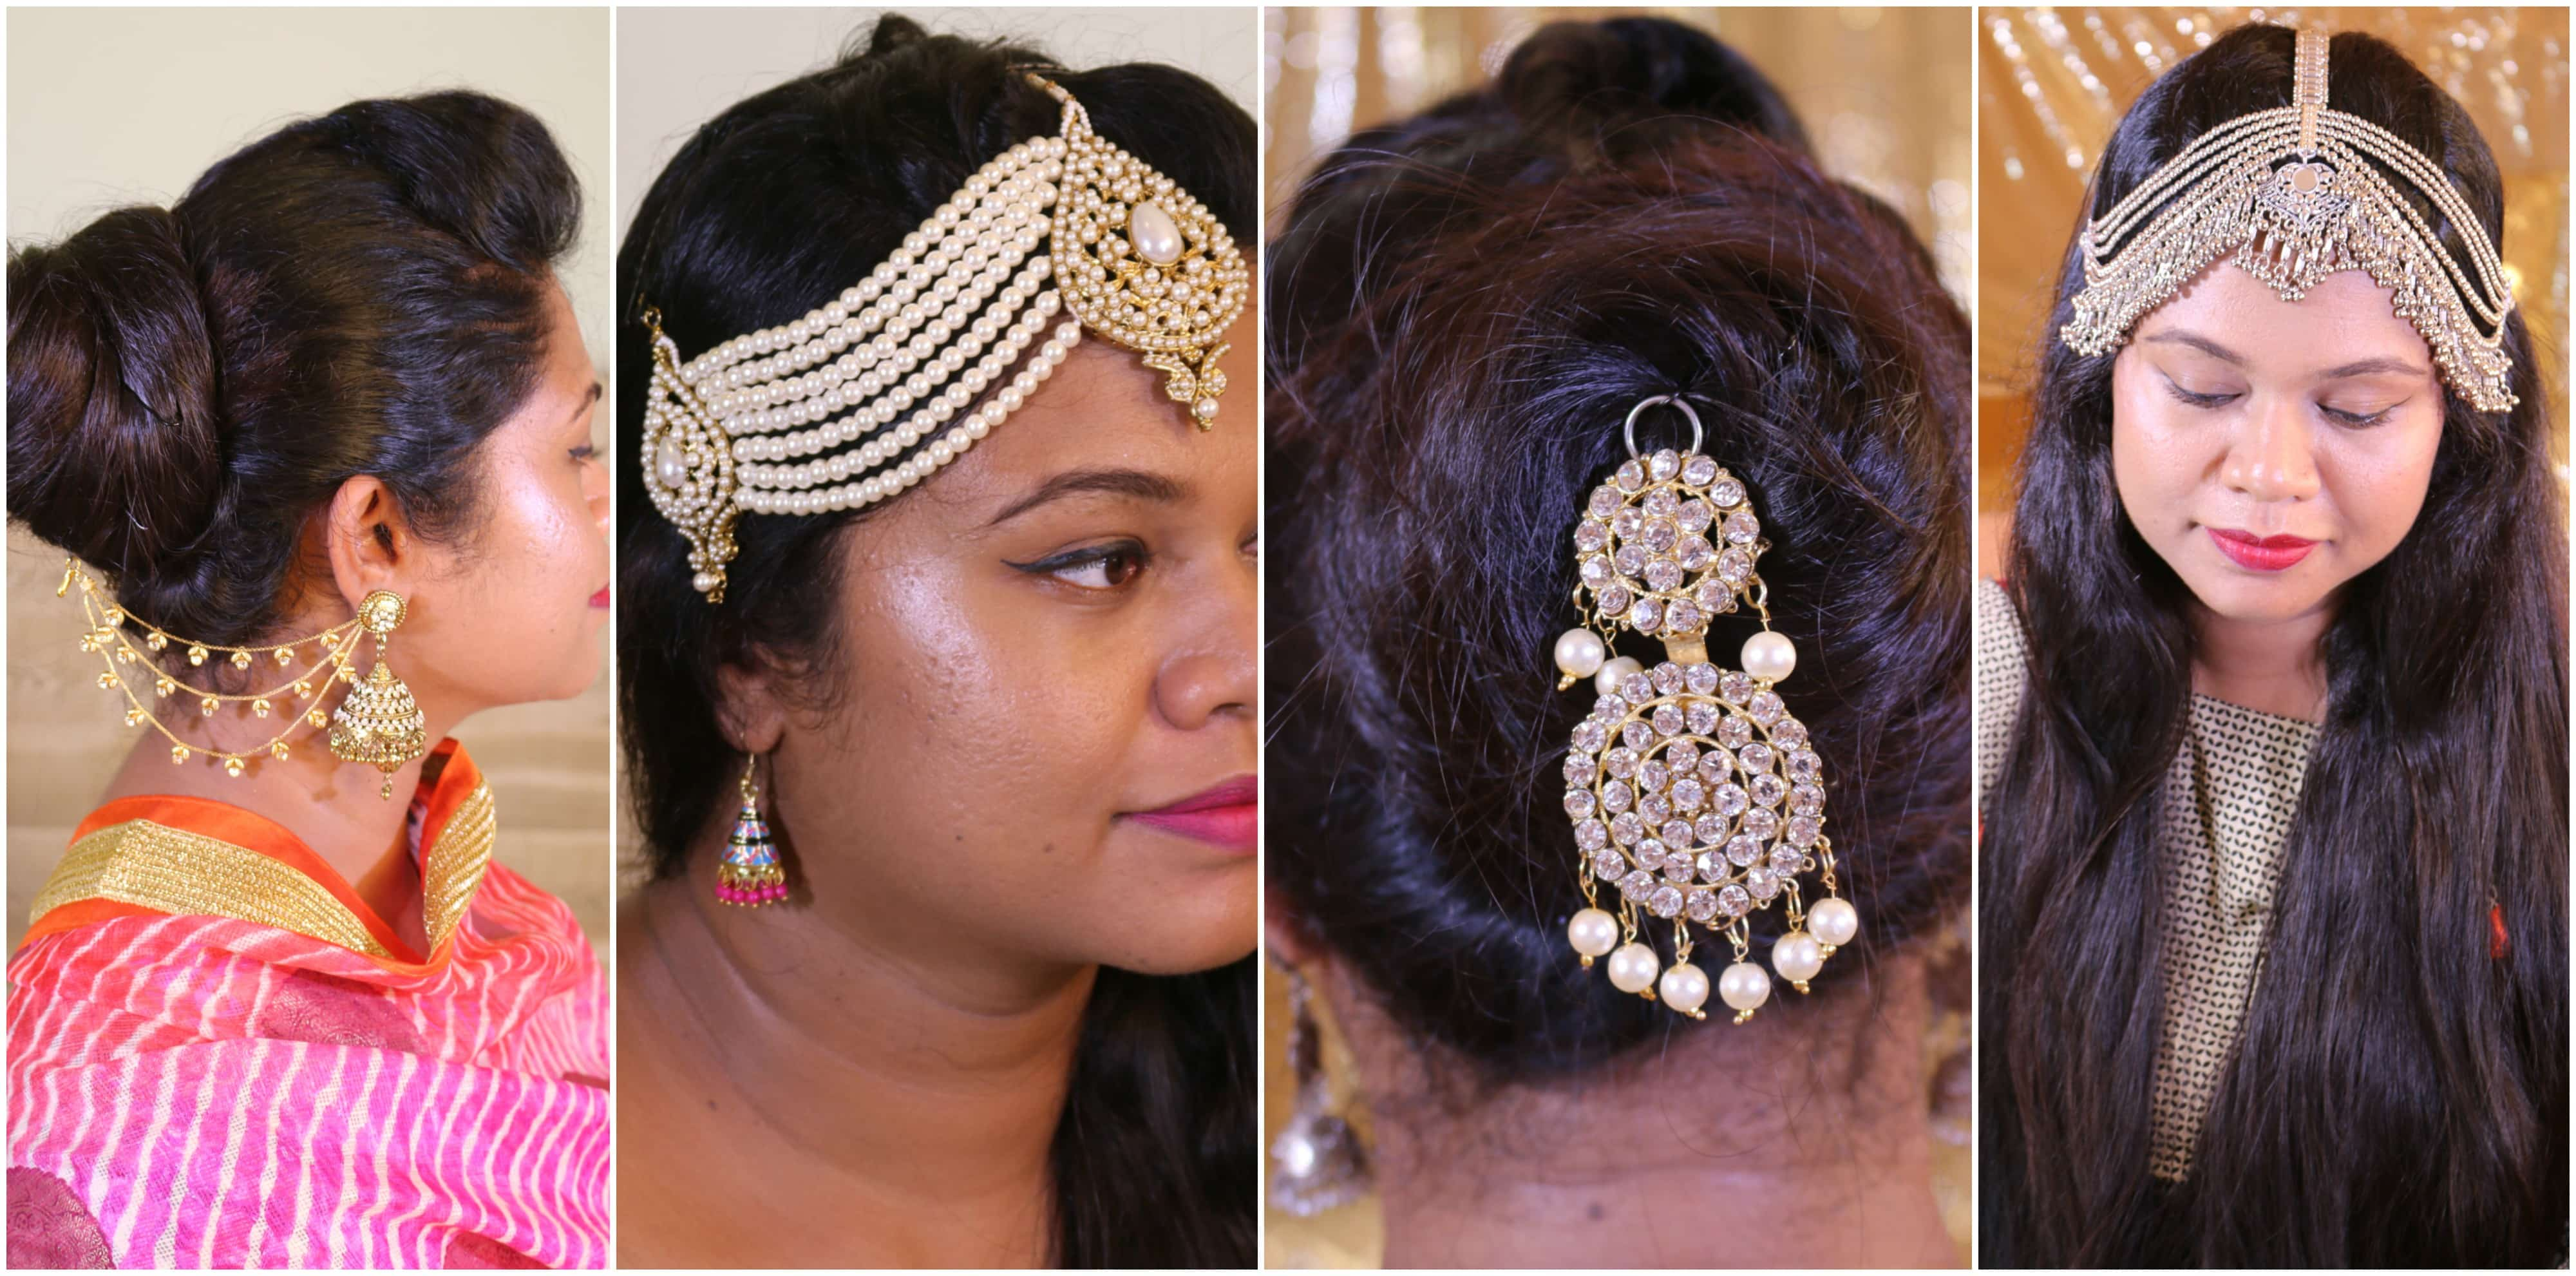 diwali hair accessory collection. indian festival makeup and